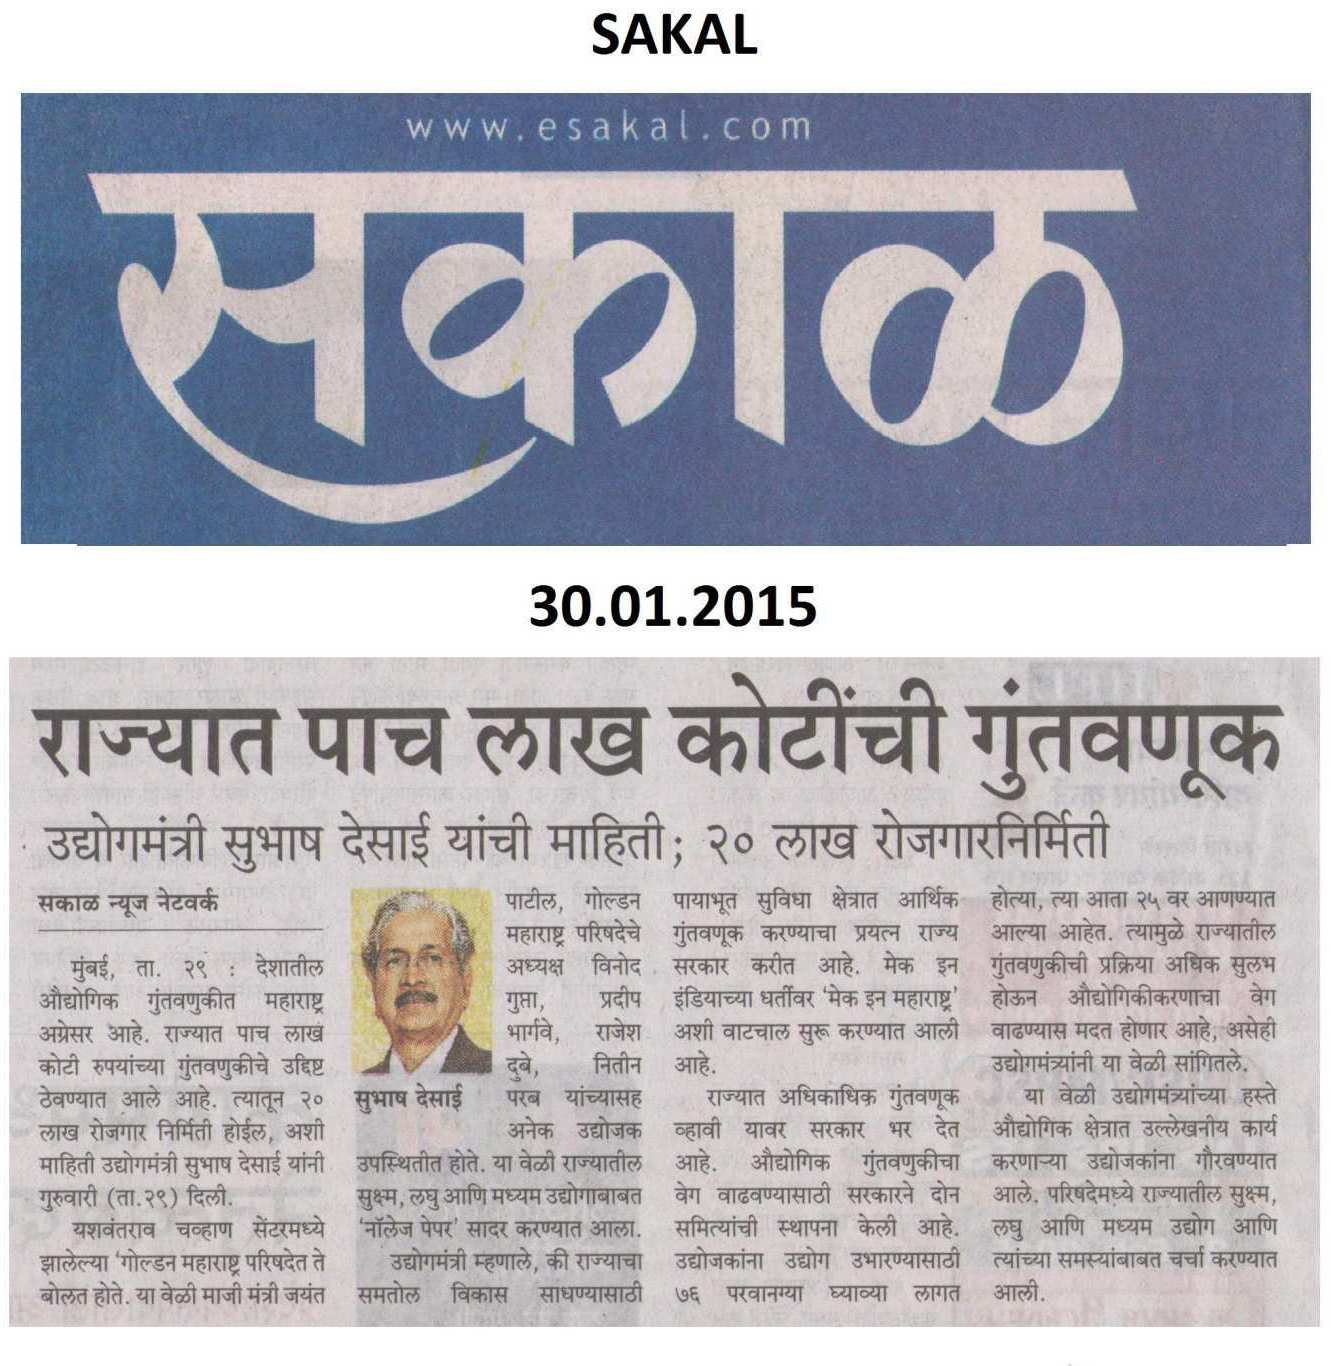 Golden MSME Summit Published in Sakad Newspaper